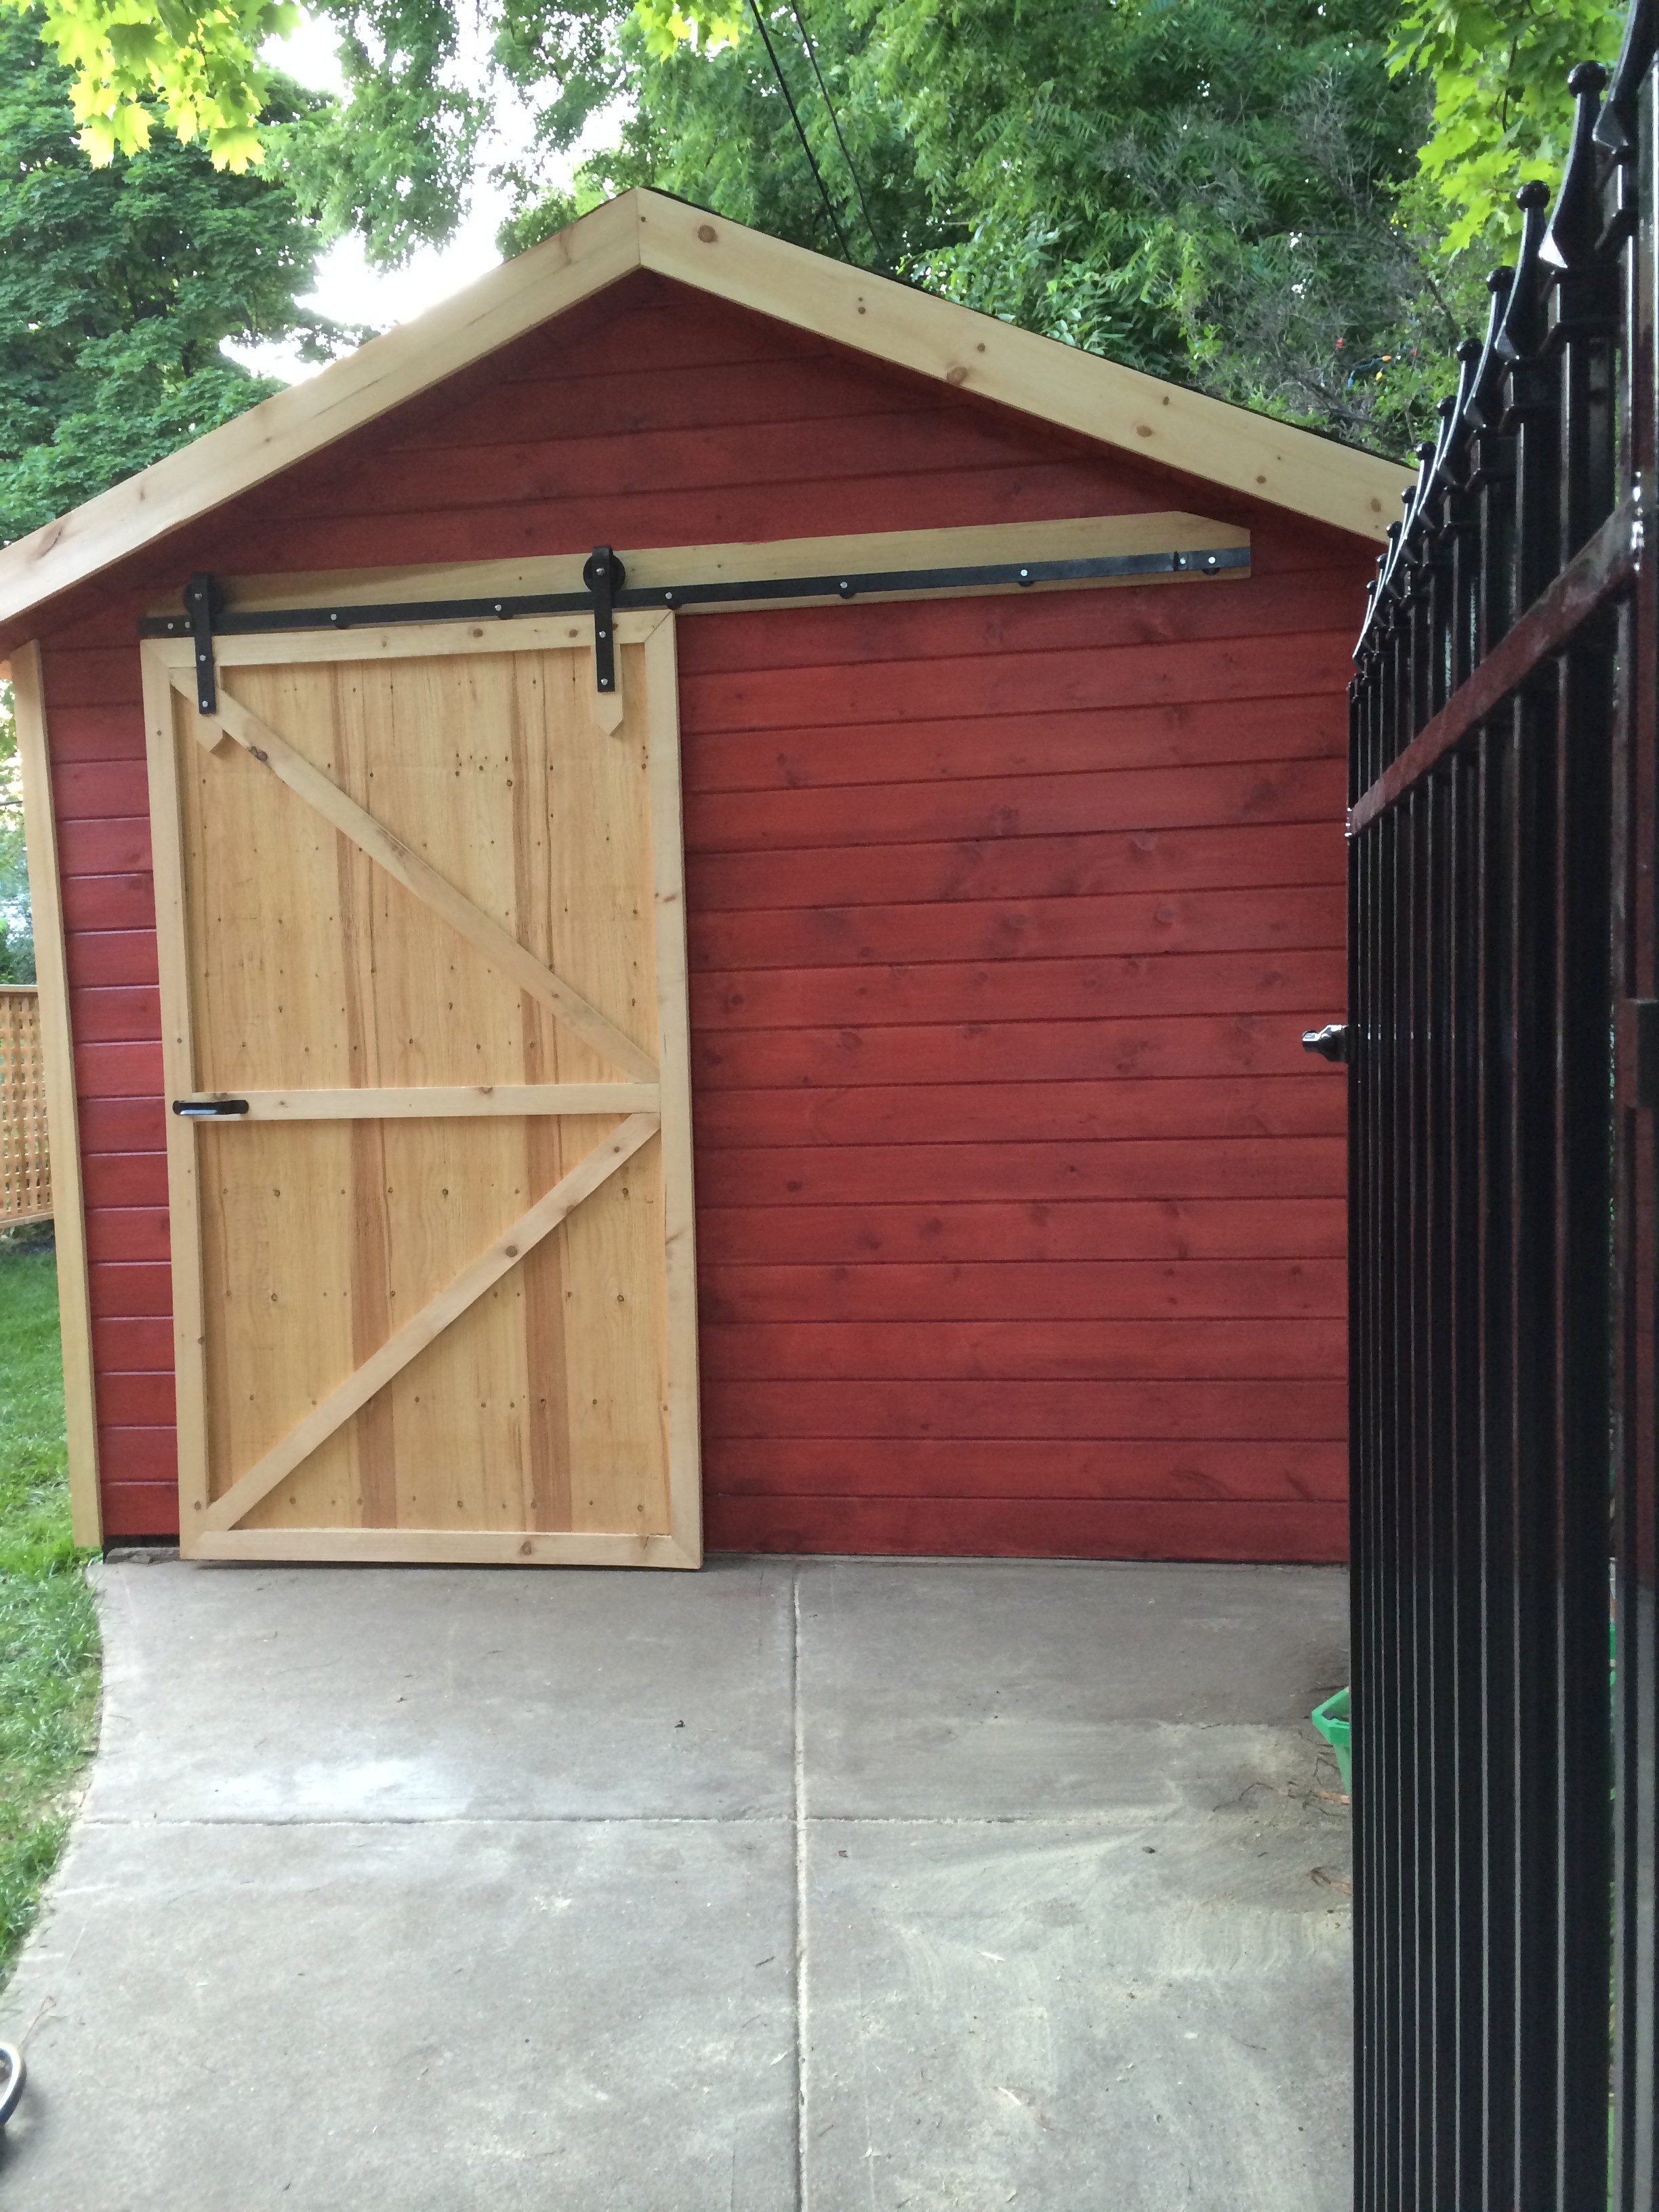 Our client just sent this in. She made a city barn out of her garage, and that special element that makes it a barn is the barn door hardware where a barn door can slide back and forth, can't do without it!! Yay for the barn door! It just looks so cute to cozy.